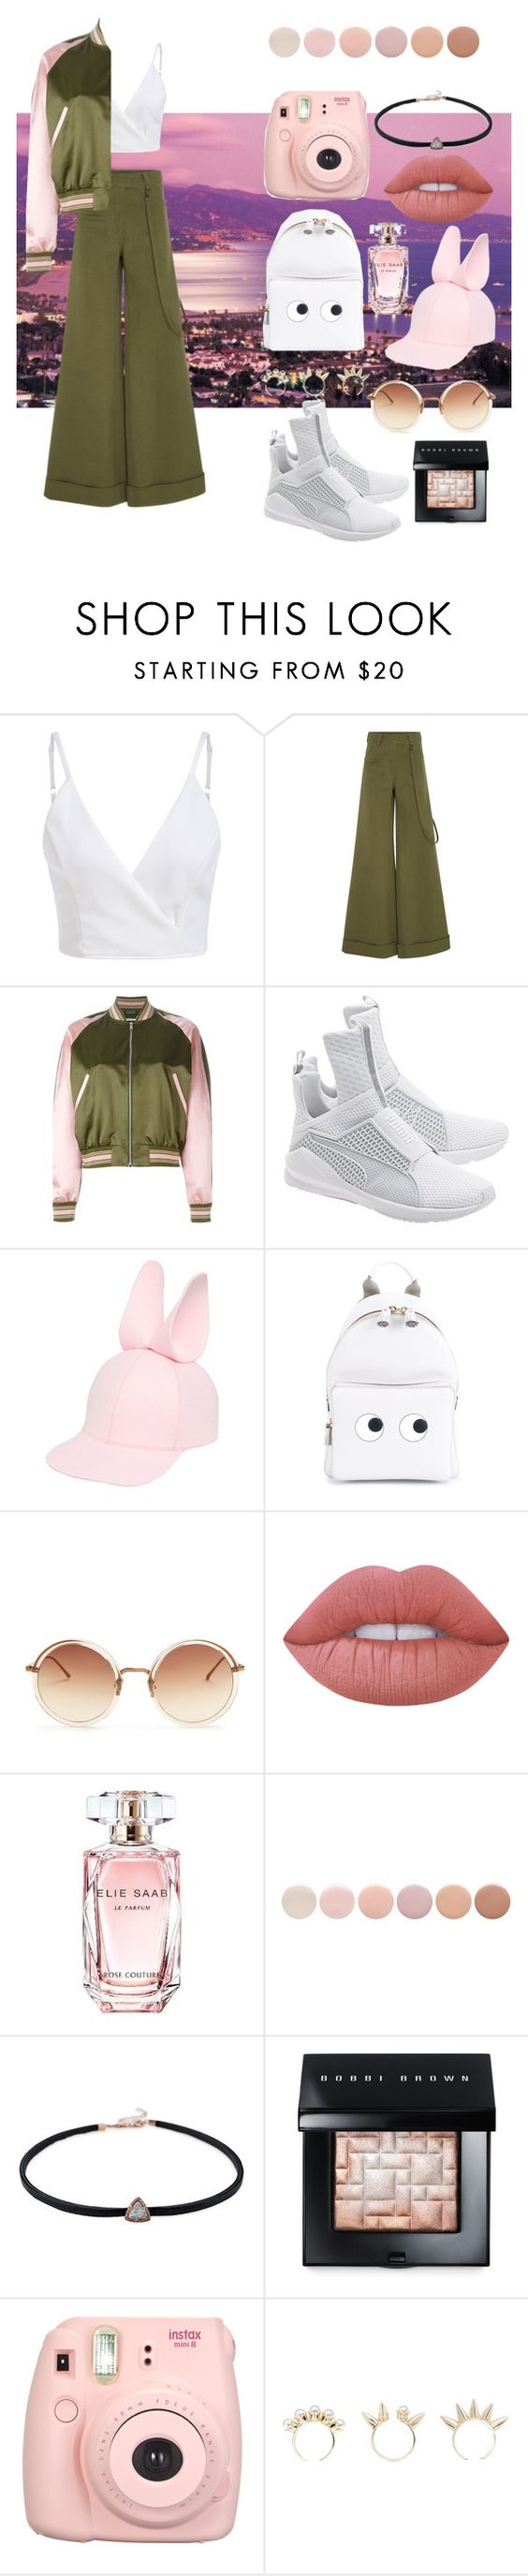 """Heartbroken"" by lollolololollol ❤ liked on Polyvore featuring Rosie Assoulin, Alexander McQueen, Francesco Ballestrazzi, Anya Hindmarch, Linda Farrow, Lime Crime, Elie Saab, Deborah Lippmann, Bobbi Brown Cosmetics and Joomi Lim"